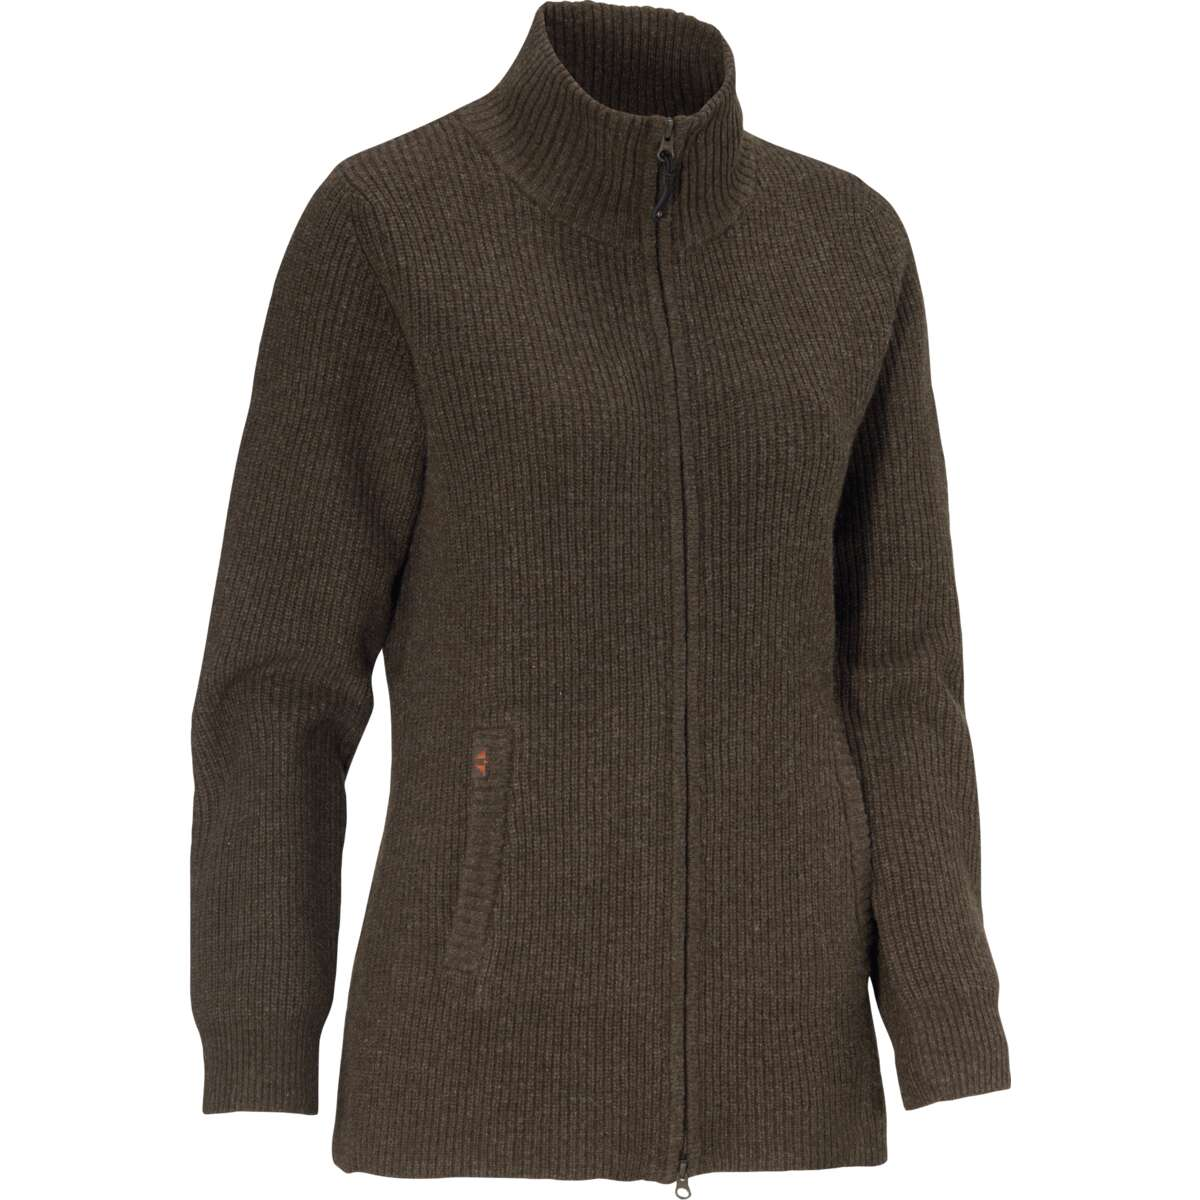 Shirley W Sweater Full zip | Products | Swedteam